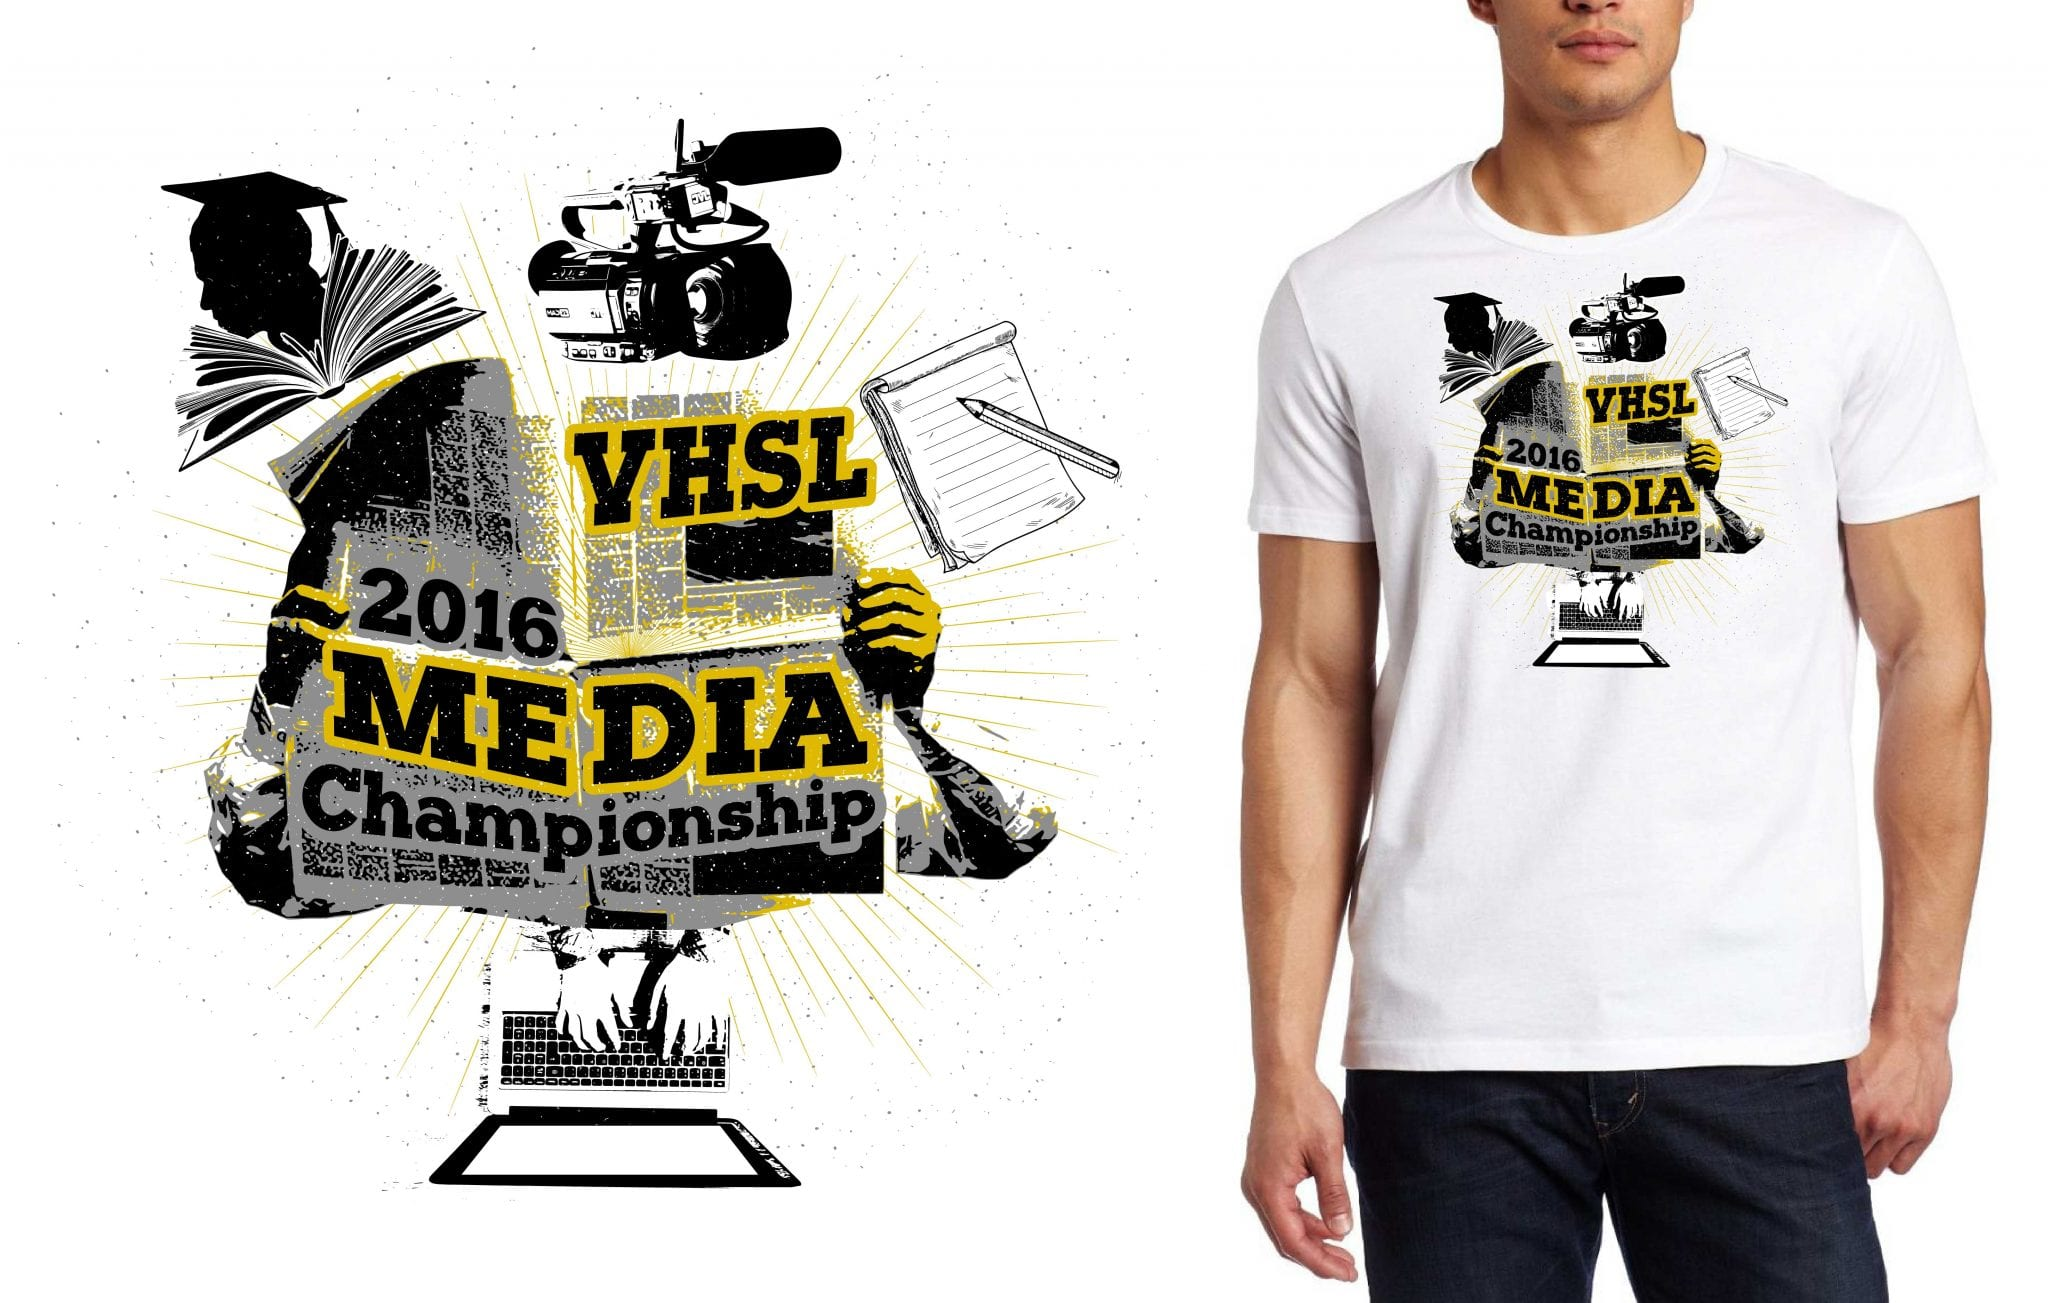 VHSL Media Championship awesome tshirt logo design